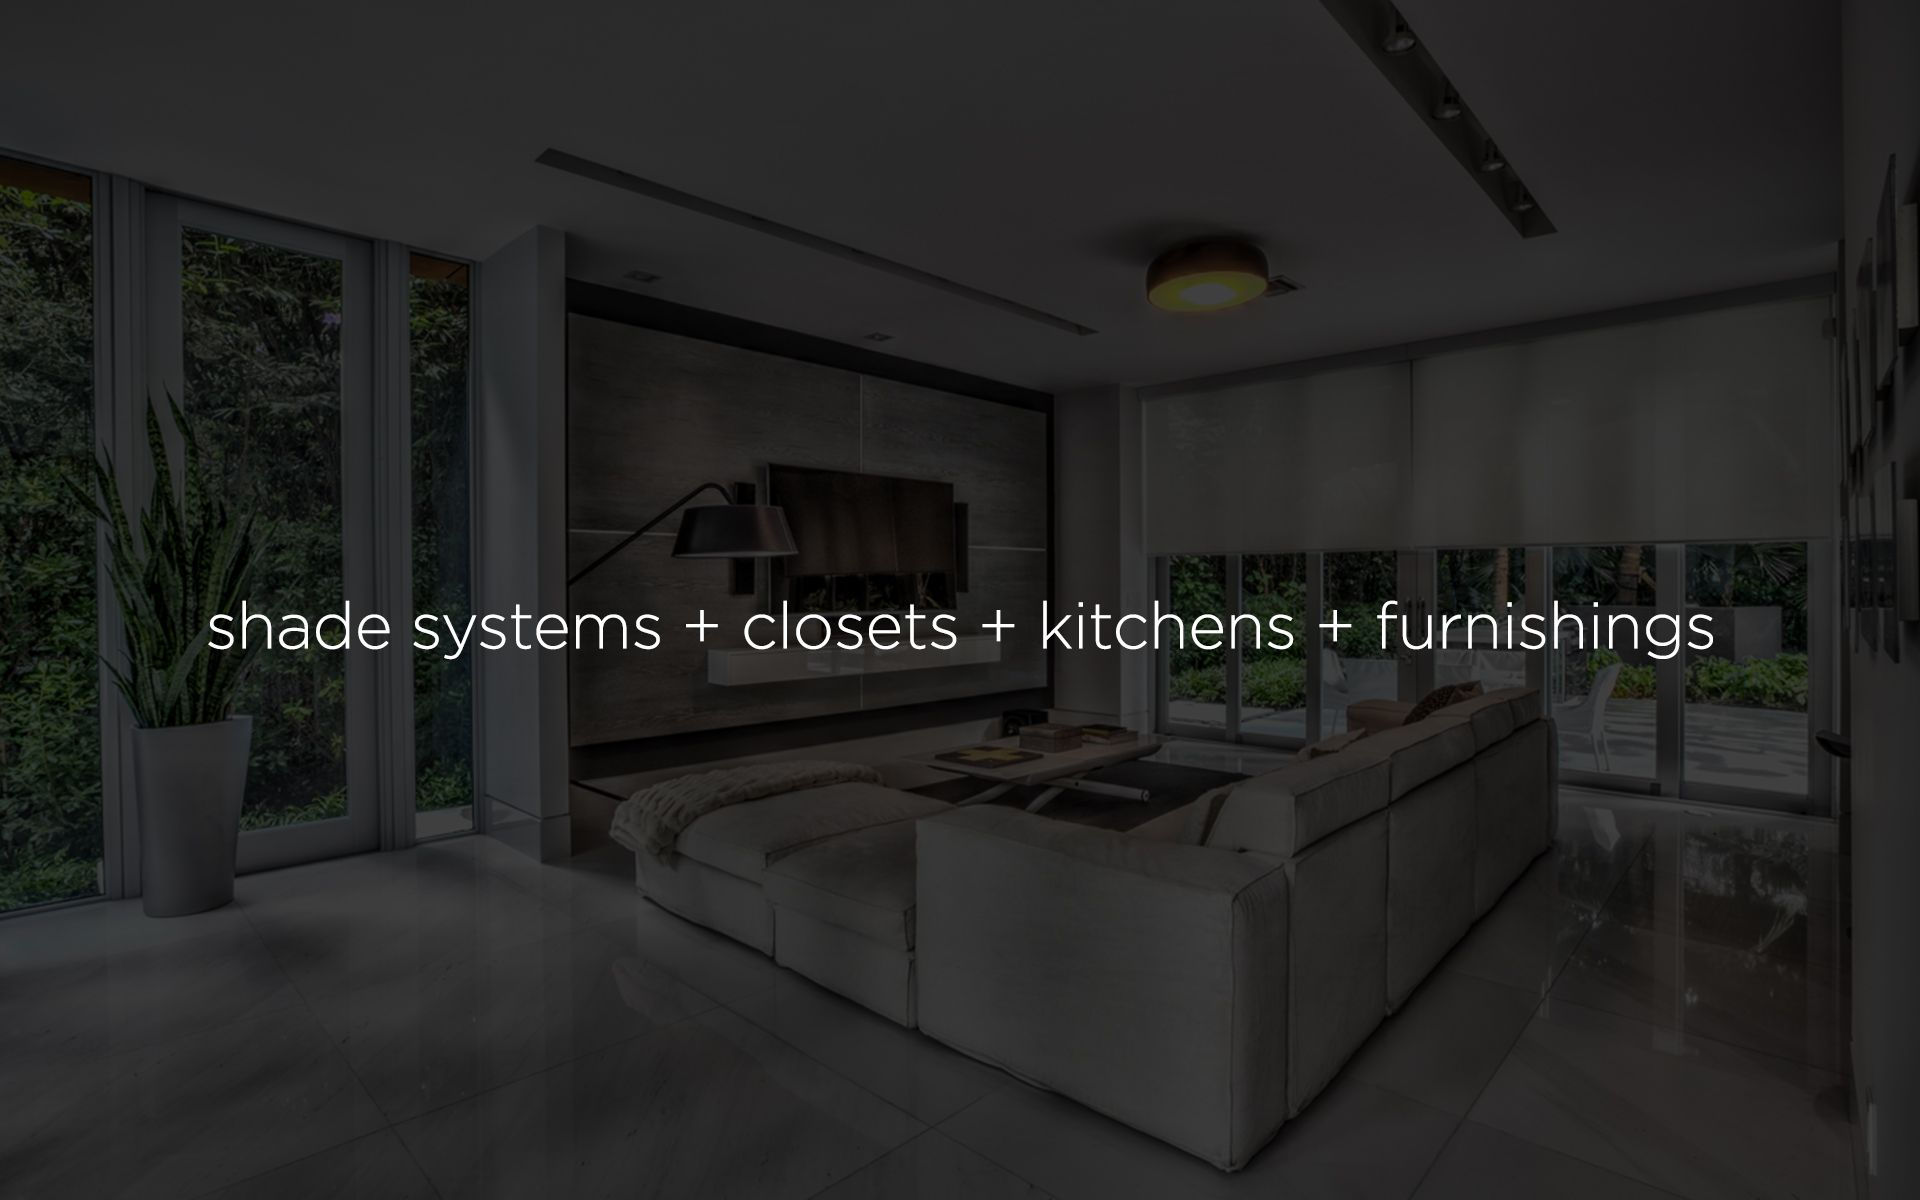 Shade Systems + Closets + Kitchens + Furnishings